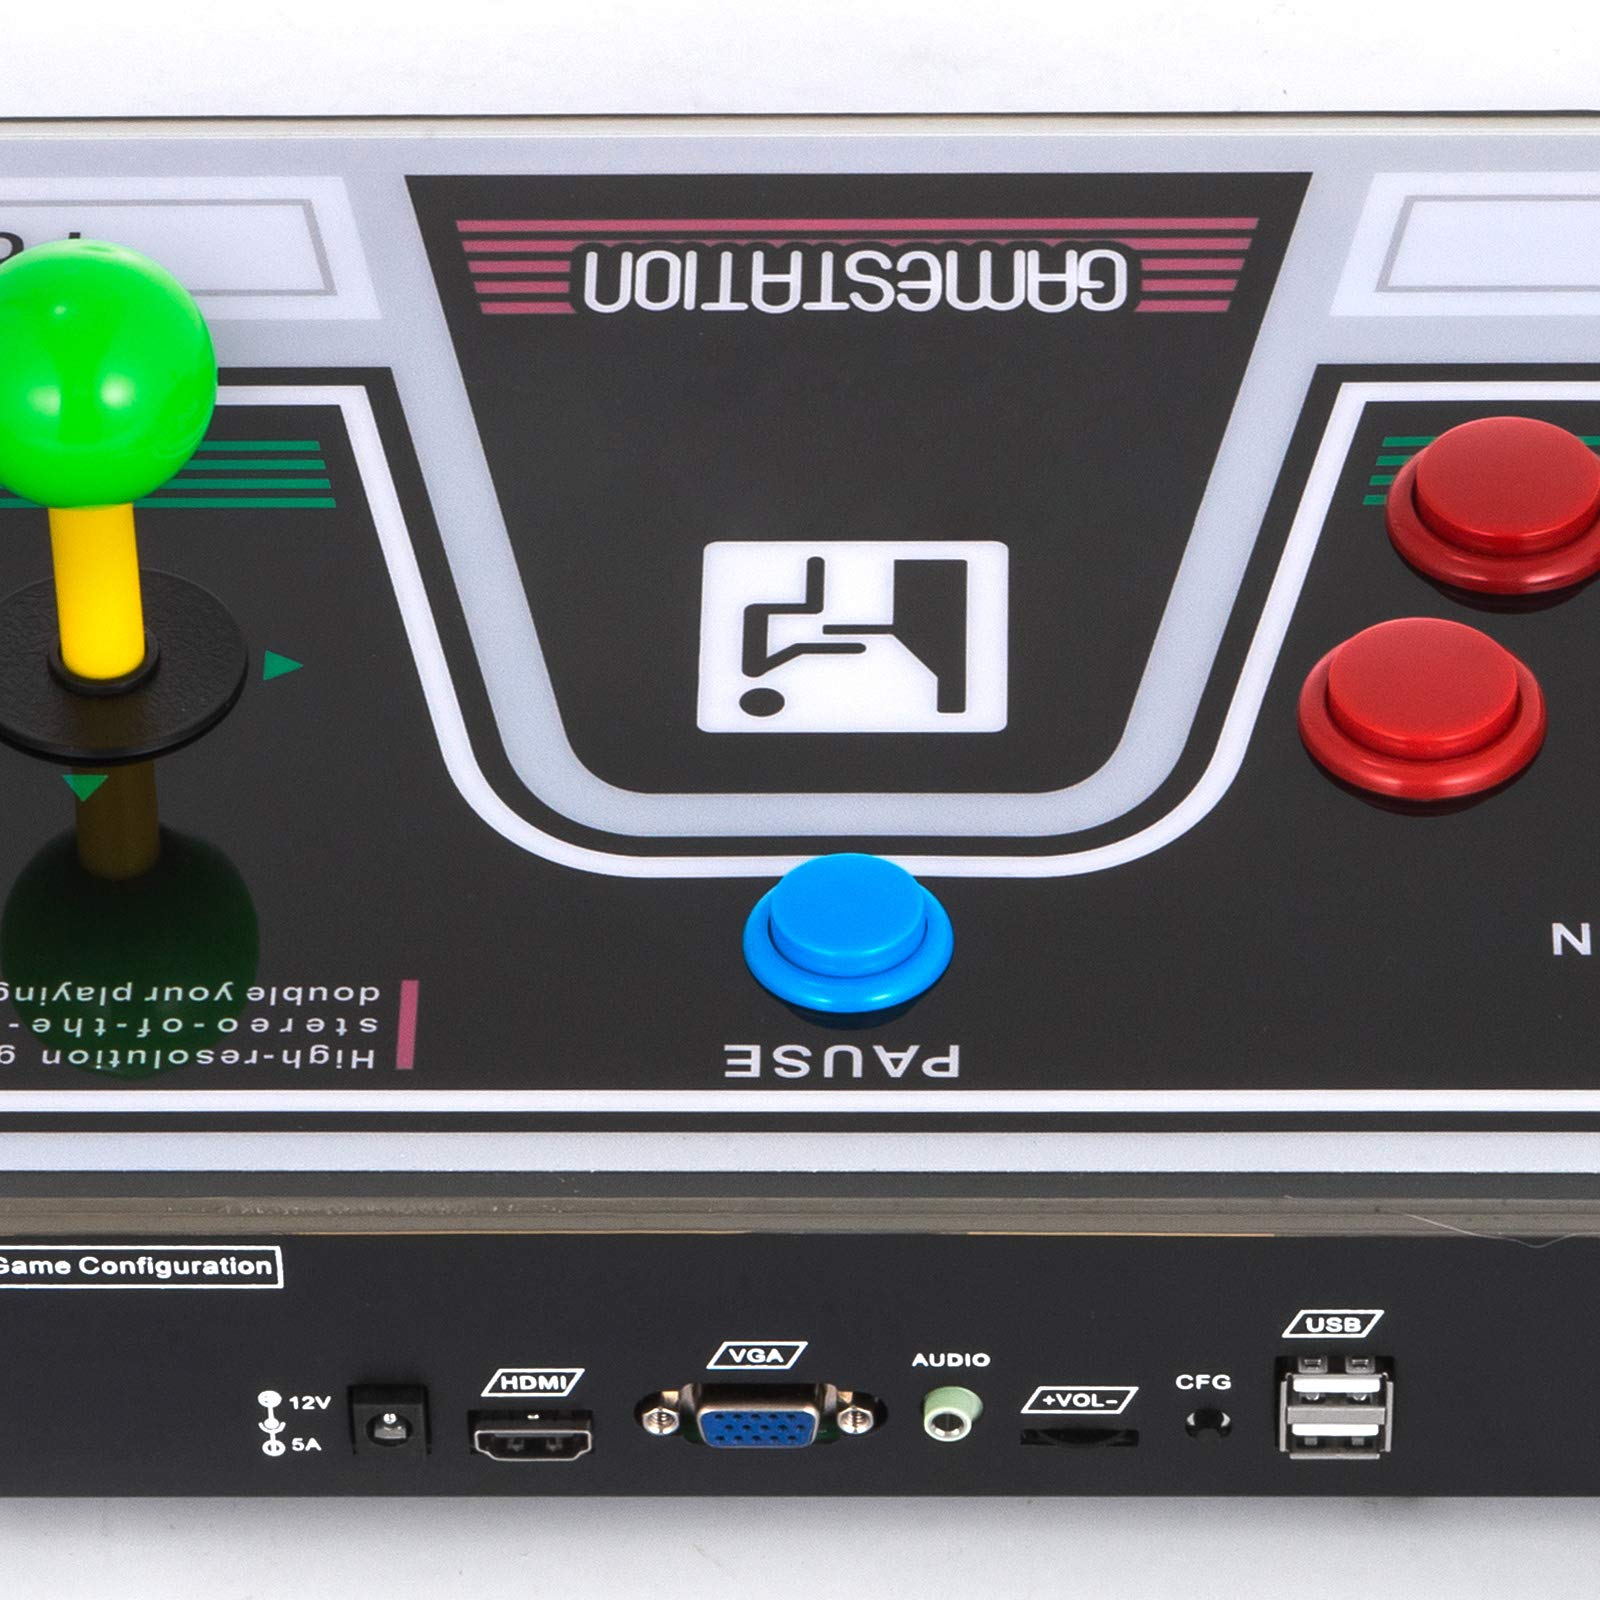 Happybuy Arcade Game Console 1280P Games 1500 in 1 Pandora's Box 2 Players Arcade Machine with Arcade Joystick Support Expand Games for PC / Laptop / TV / PS4 by Happybuy (Image #9)